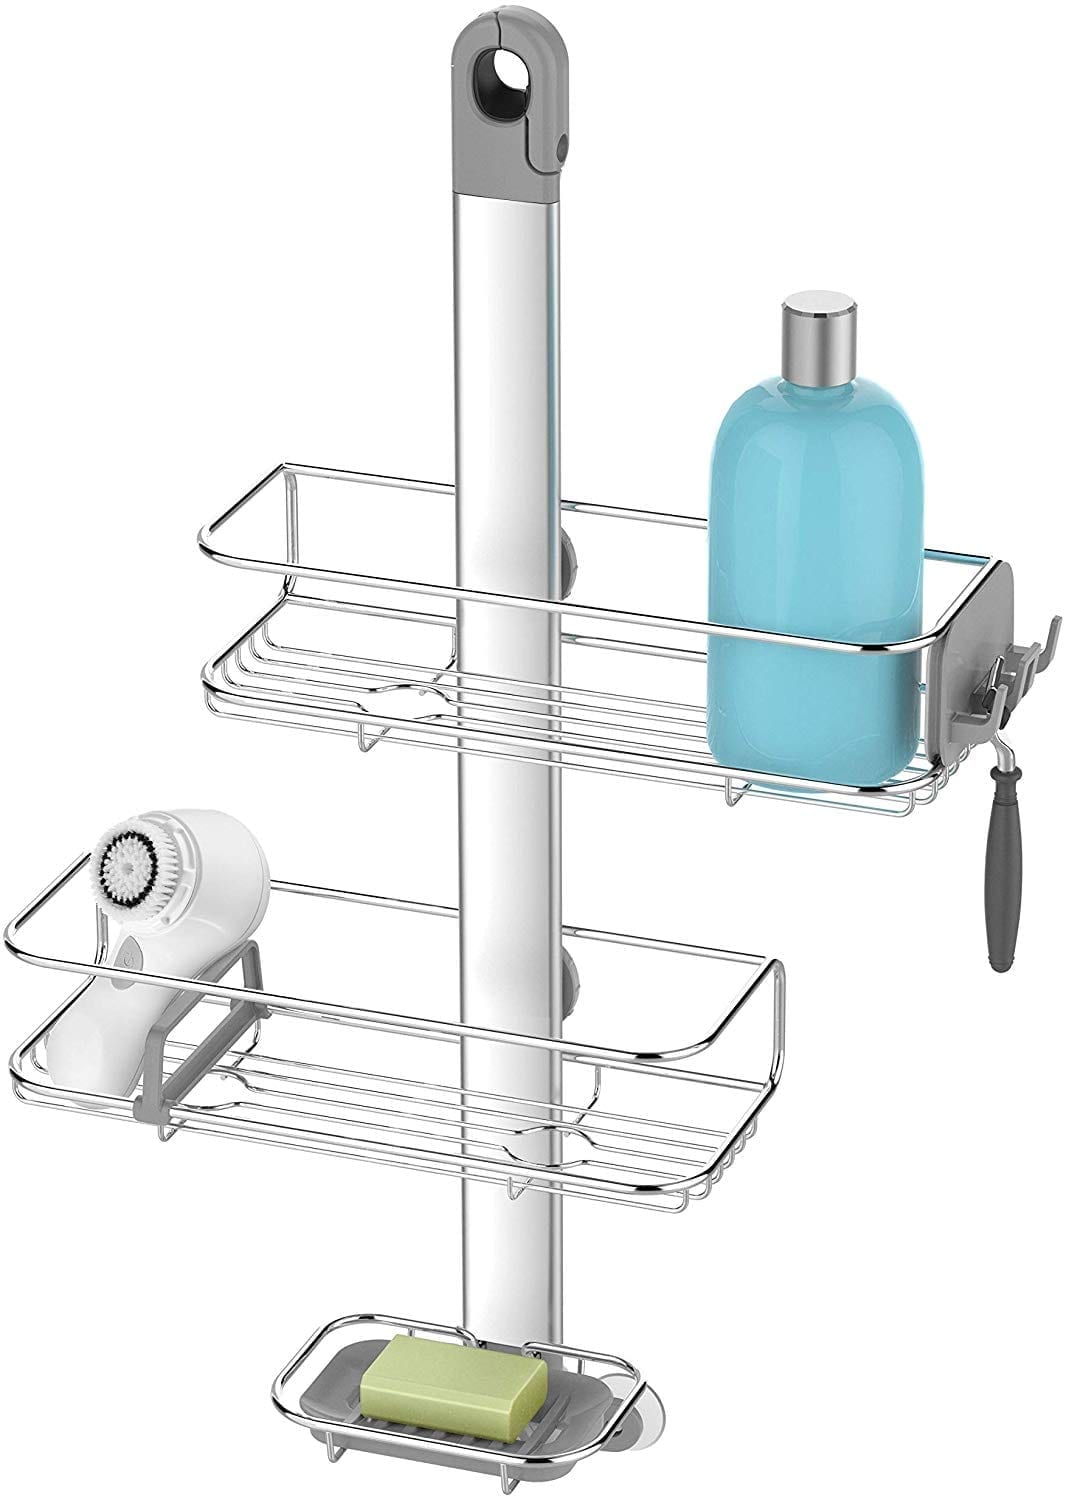 Adjustable Shower Caddy from Simplehuman